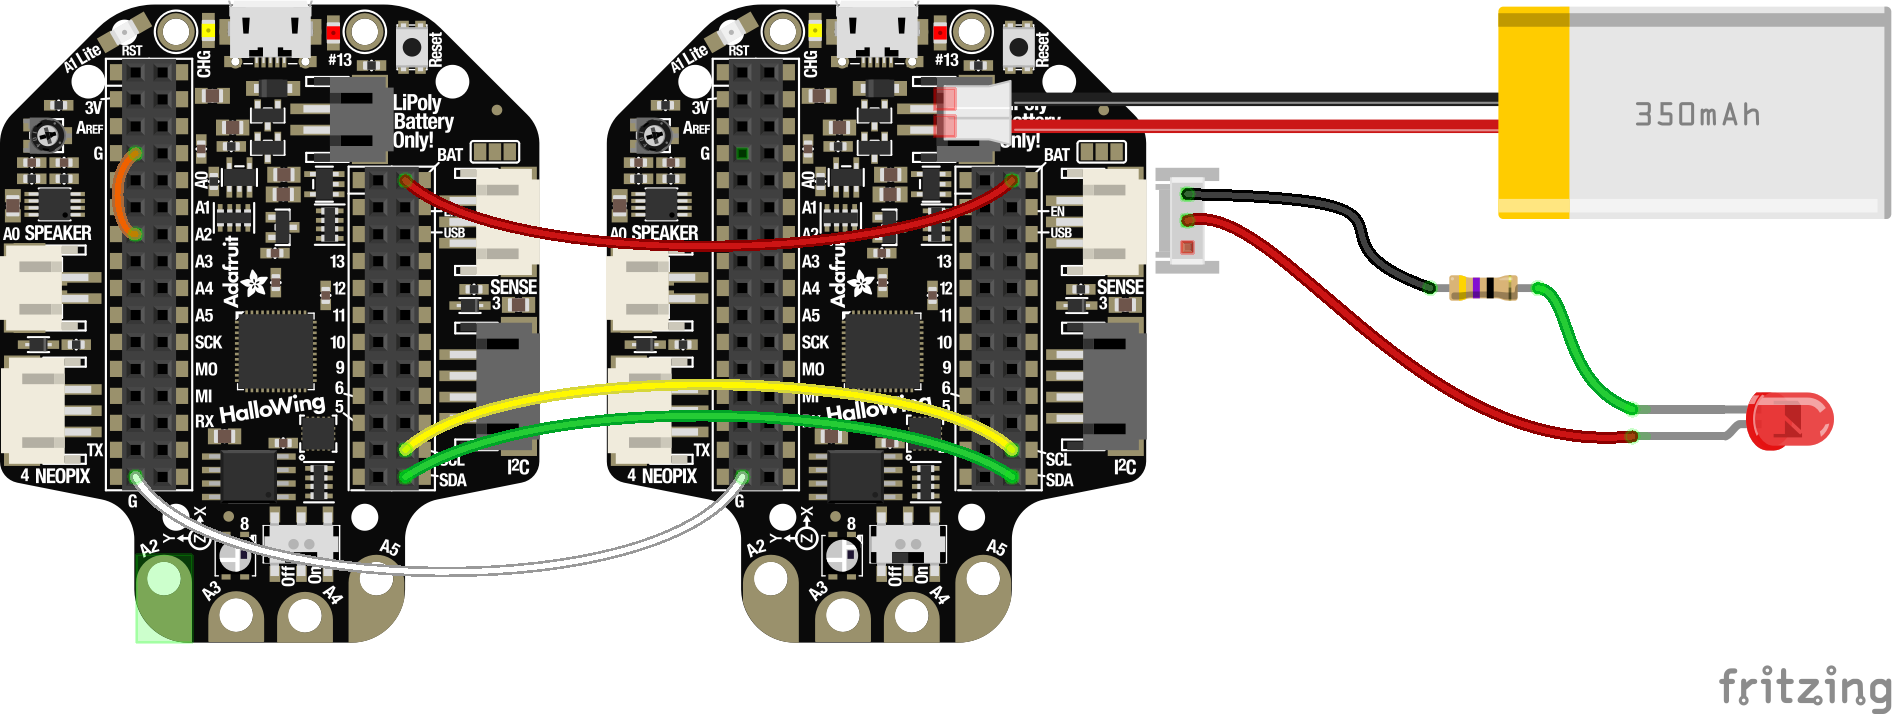 adafruit_products_rudolph_bb.png